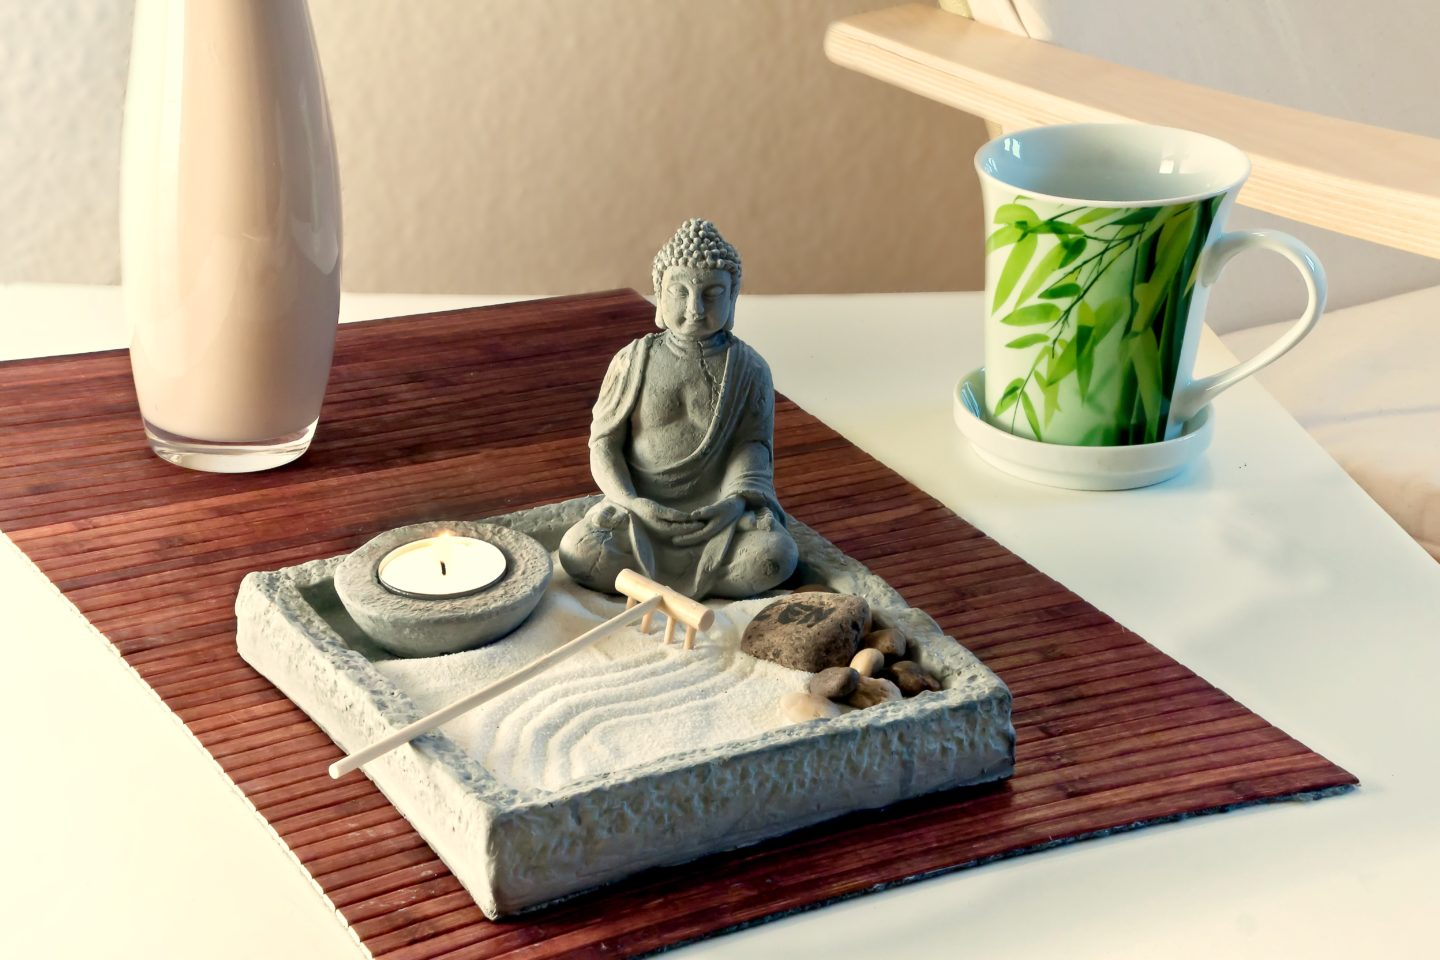 7 Feng Shui Tips to Bring More Luck to your Home